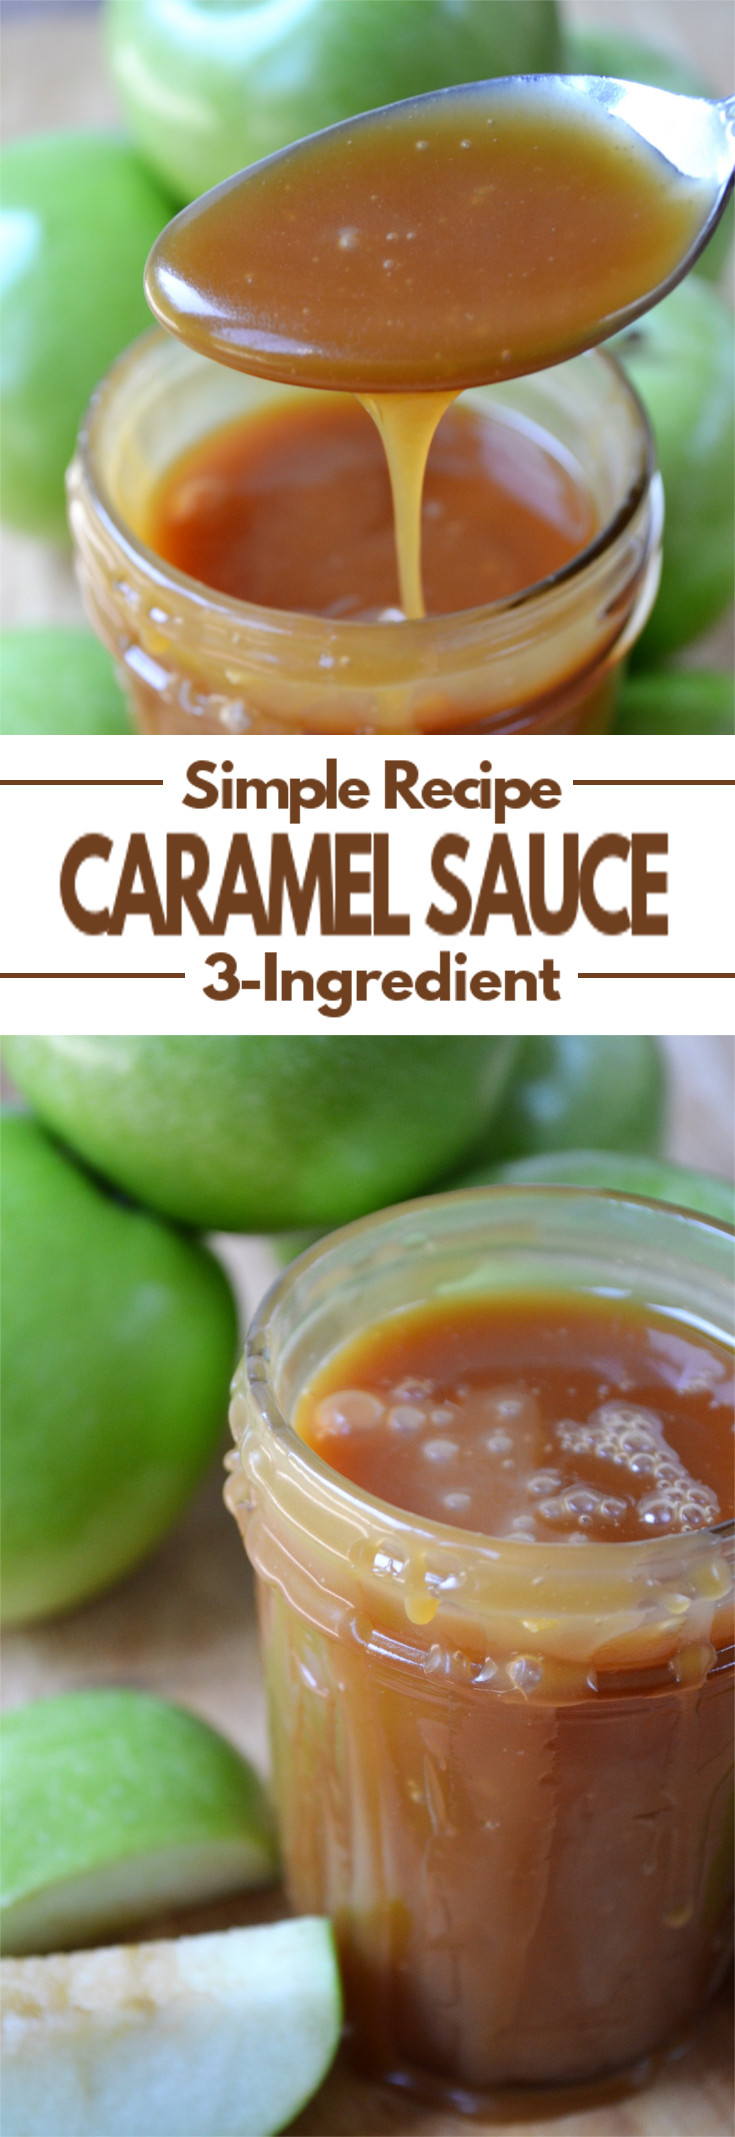 Homemade Caramel Sauce - A super simple, 3-ingredient, thick, yet smooth, sweet topping that tastes amazing with apples, ice cream or many of your favorite fall desserts.